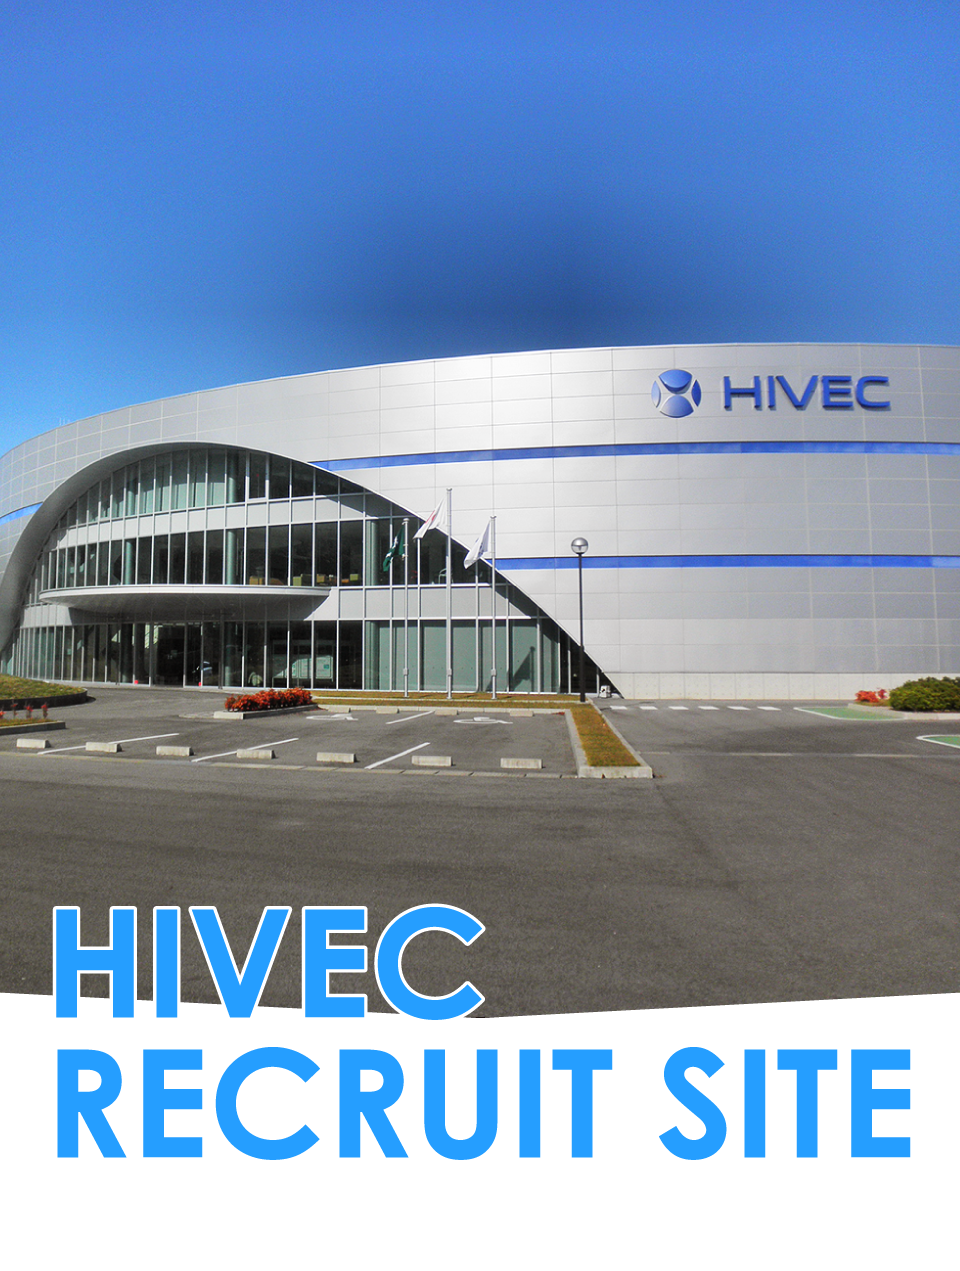 HIVEC RECRUIT SITE